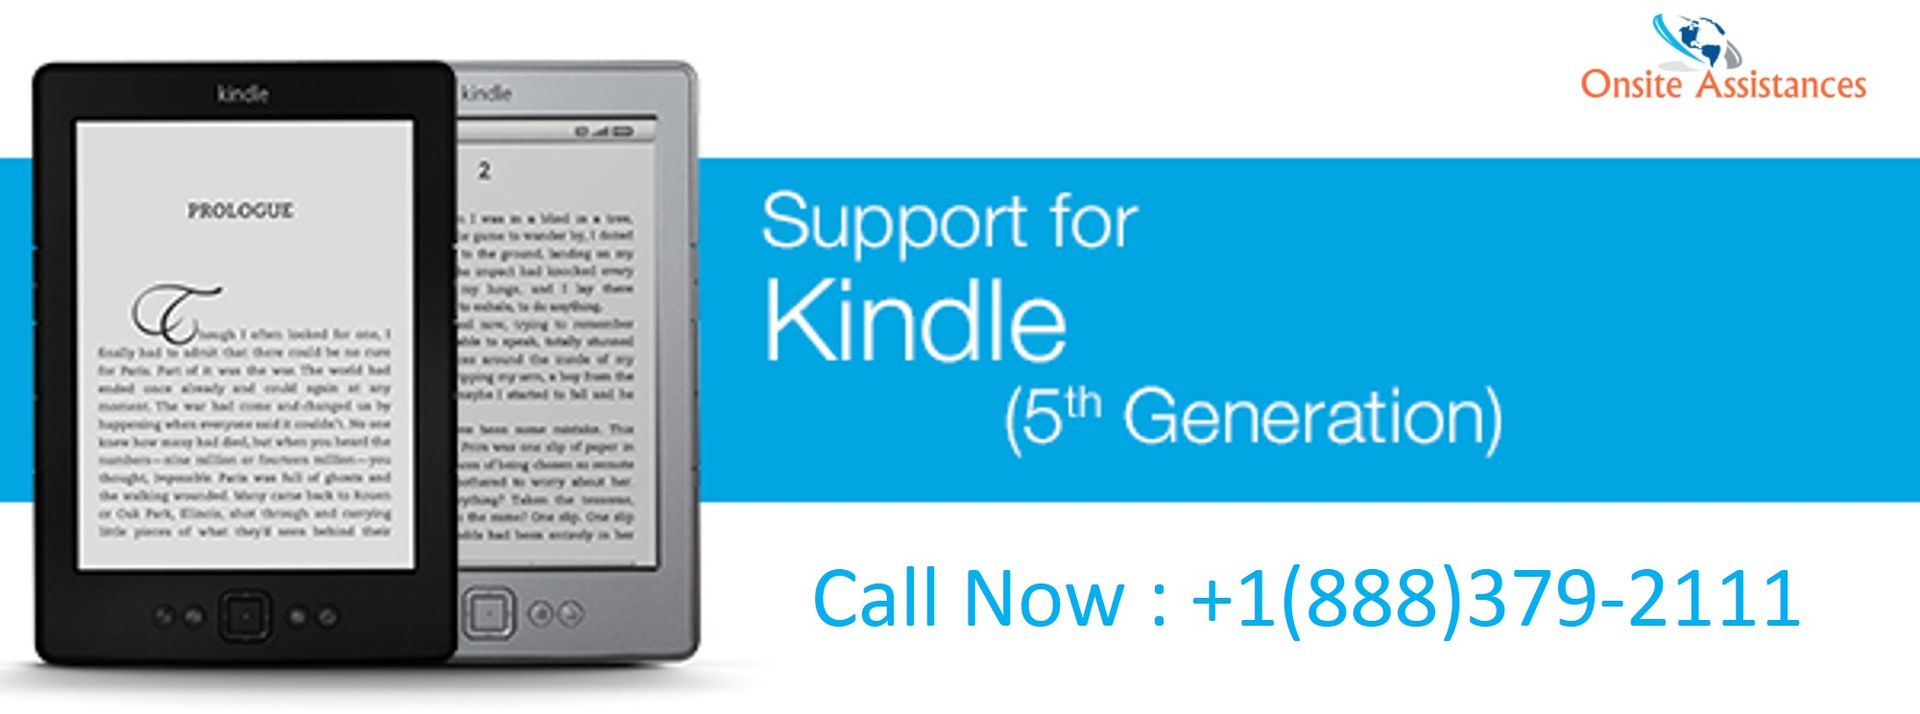 Toll free kindle customer support | +1(888)379-2111 | onsite assistances